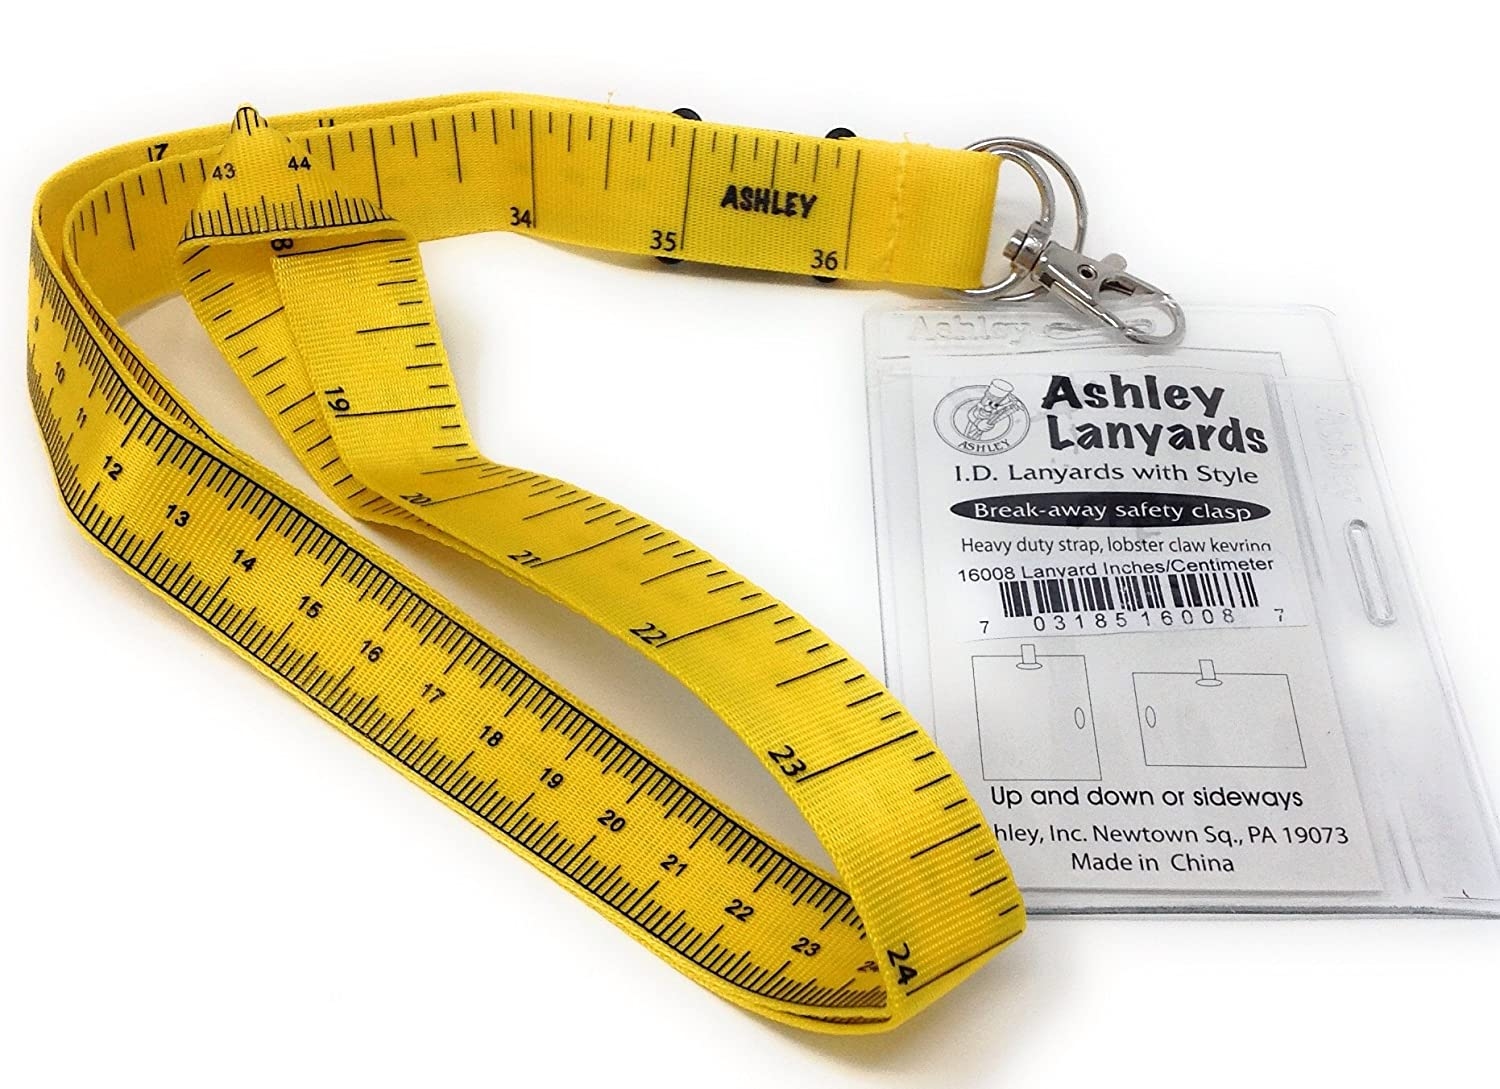 Lanyard Tape Measure with I.d. Holder and Keyring, Package of (1) Ashley Inc.